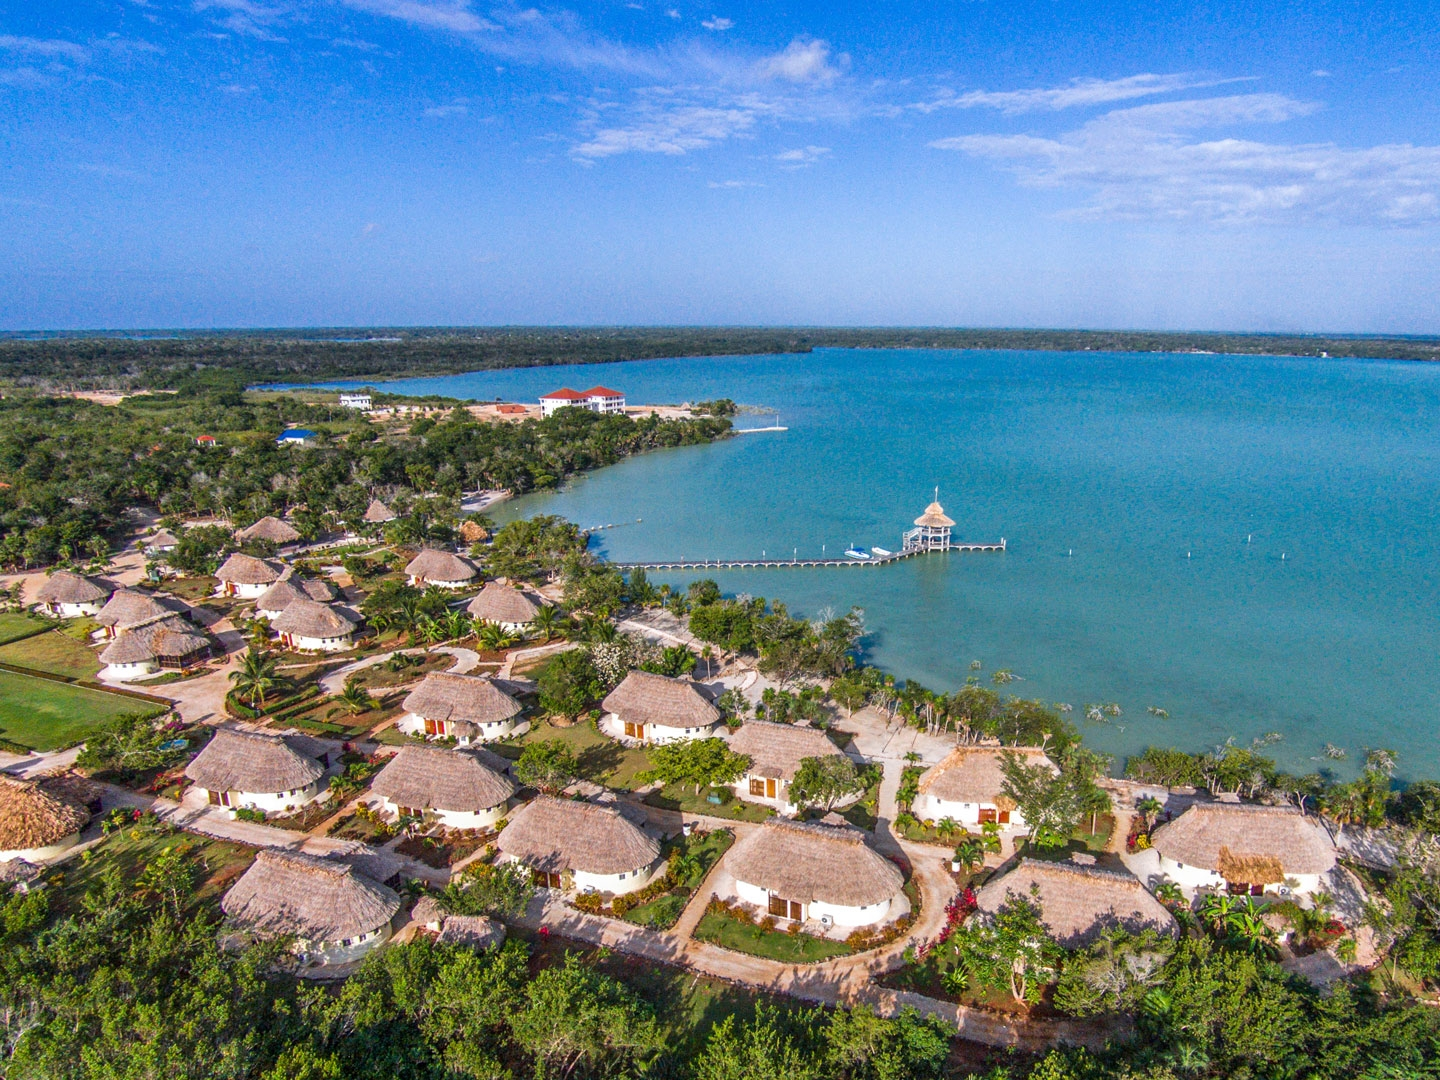 Orchid Bay's Casita product overlook the Bay of Chetumal